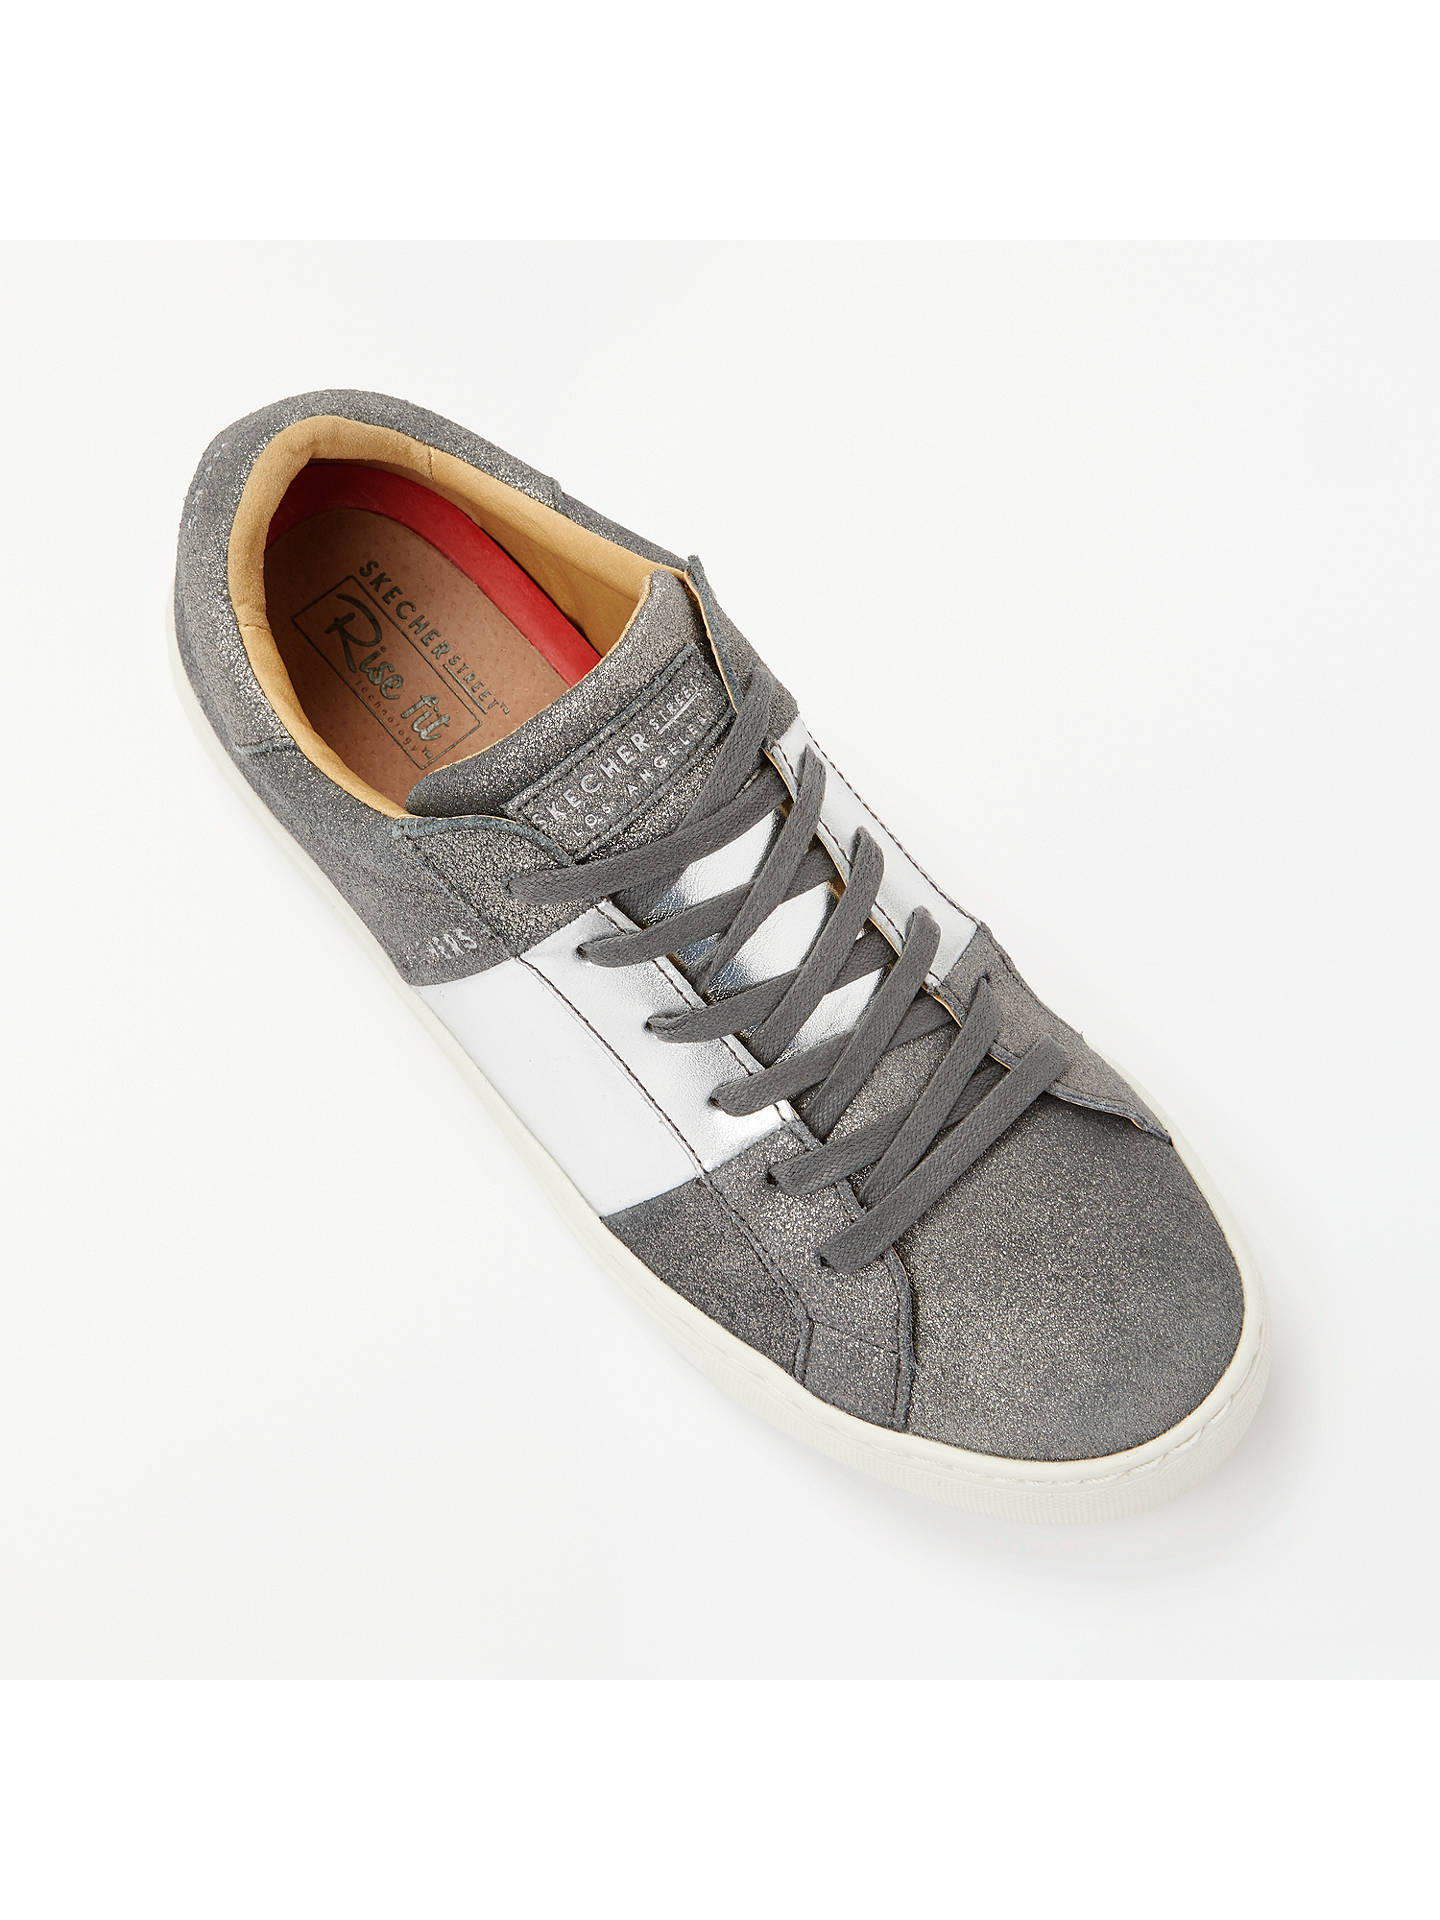 Buy Skechers Side Street Lace Up Trainers, Grey/Silver Leather, 5 Online at johnlewis.com